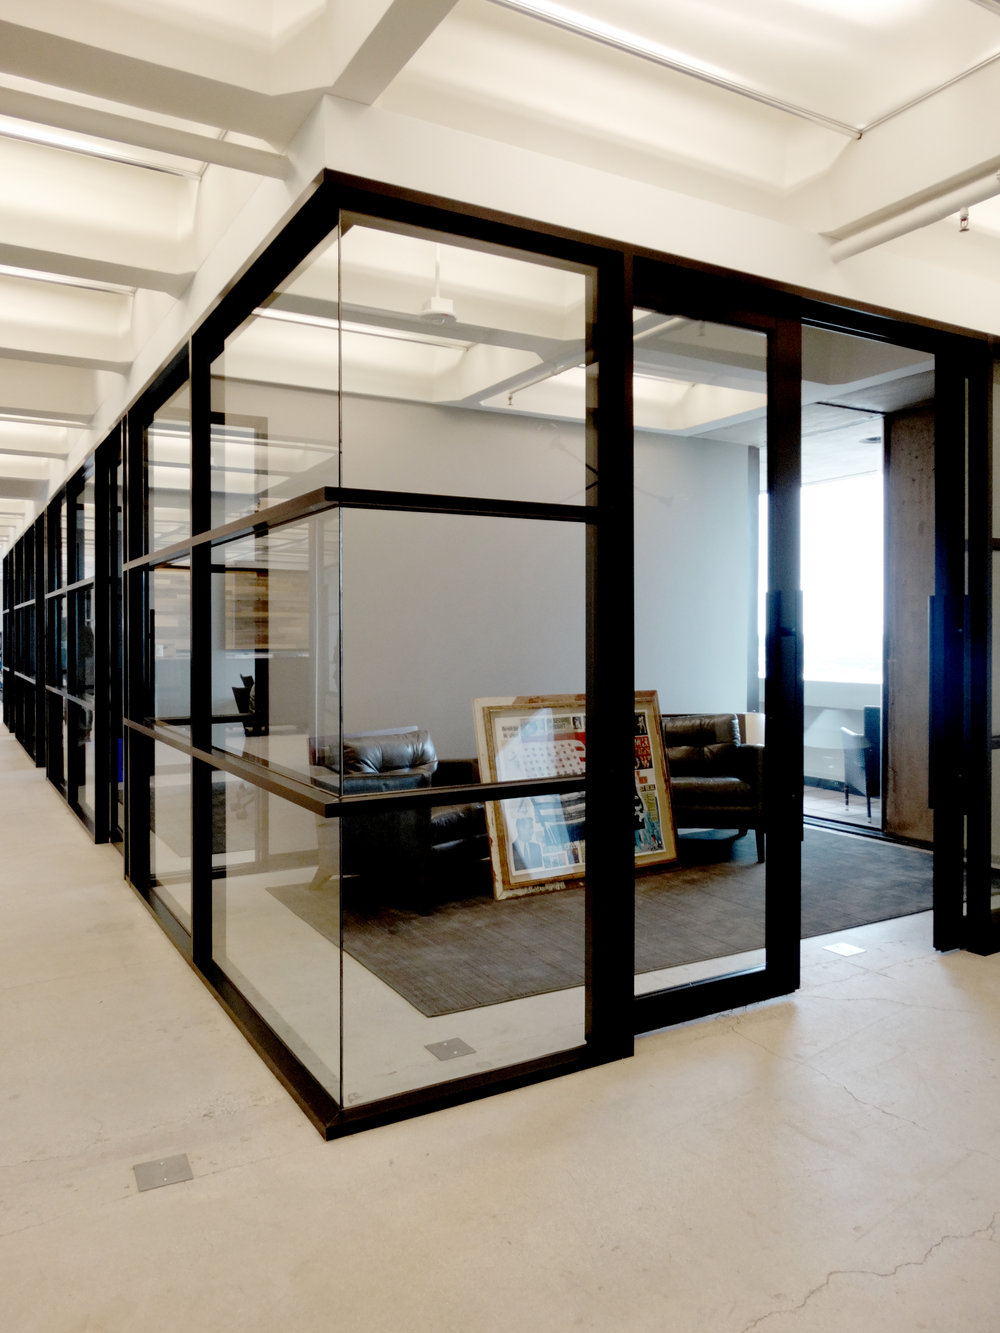 Encase Black Powder Coated Aluminum Framed Glass Wall System - Spaceworks AI.JPG